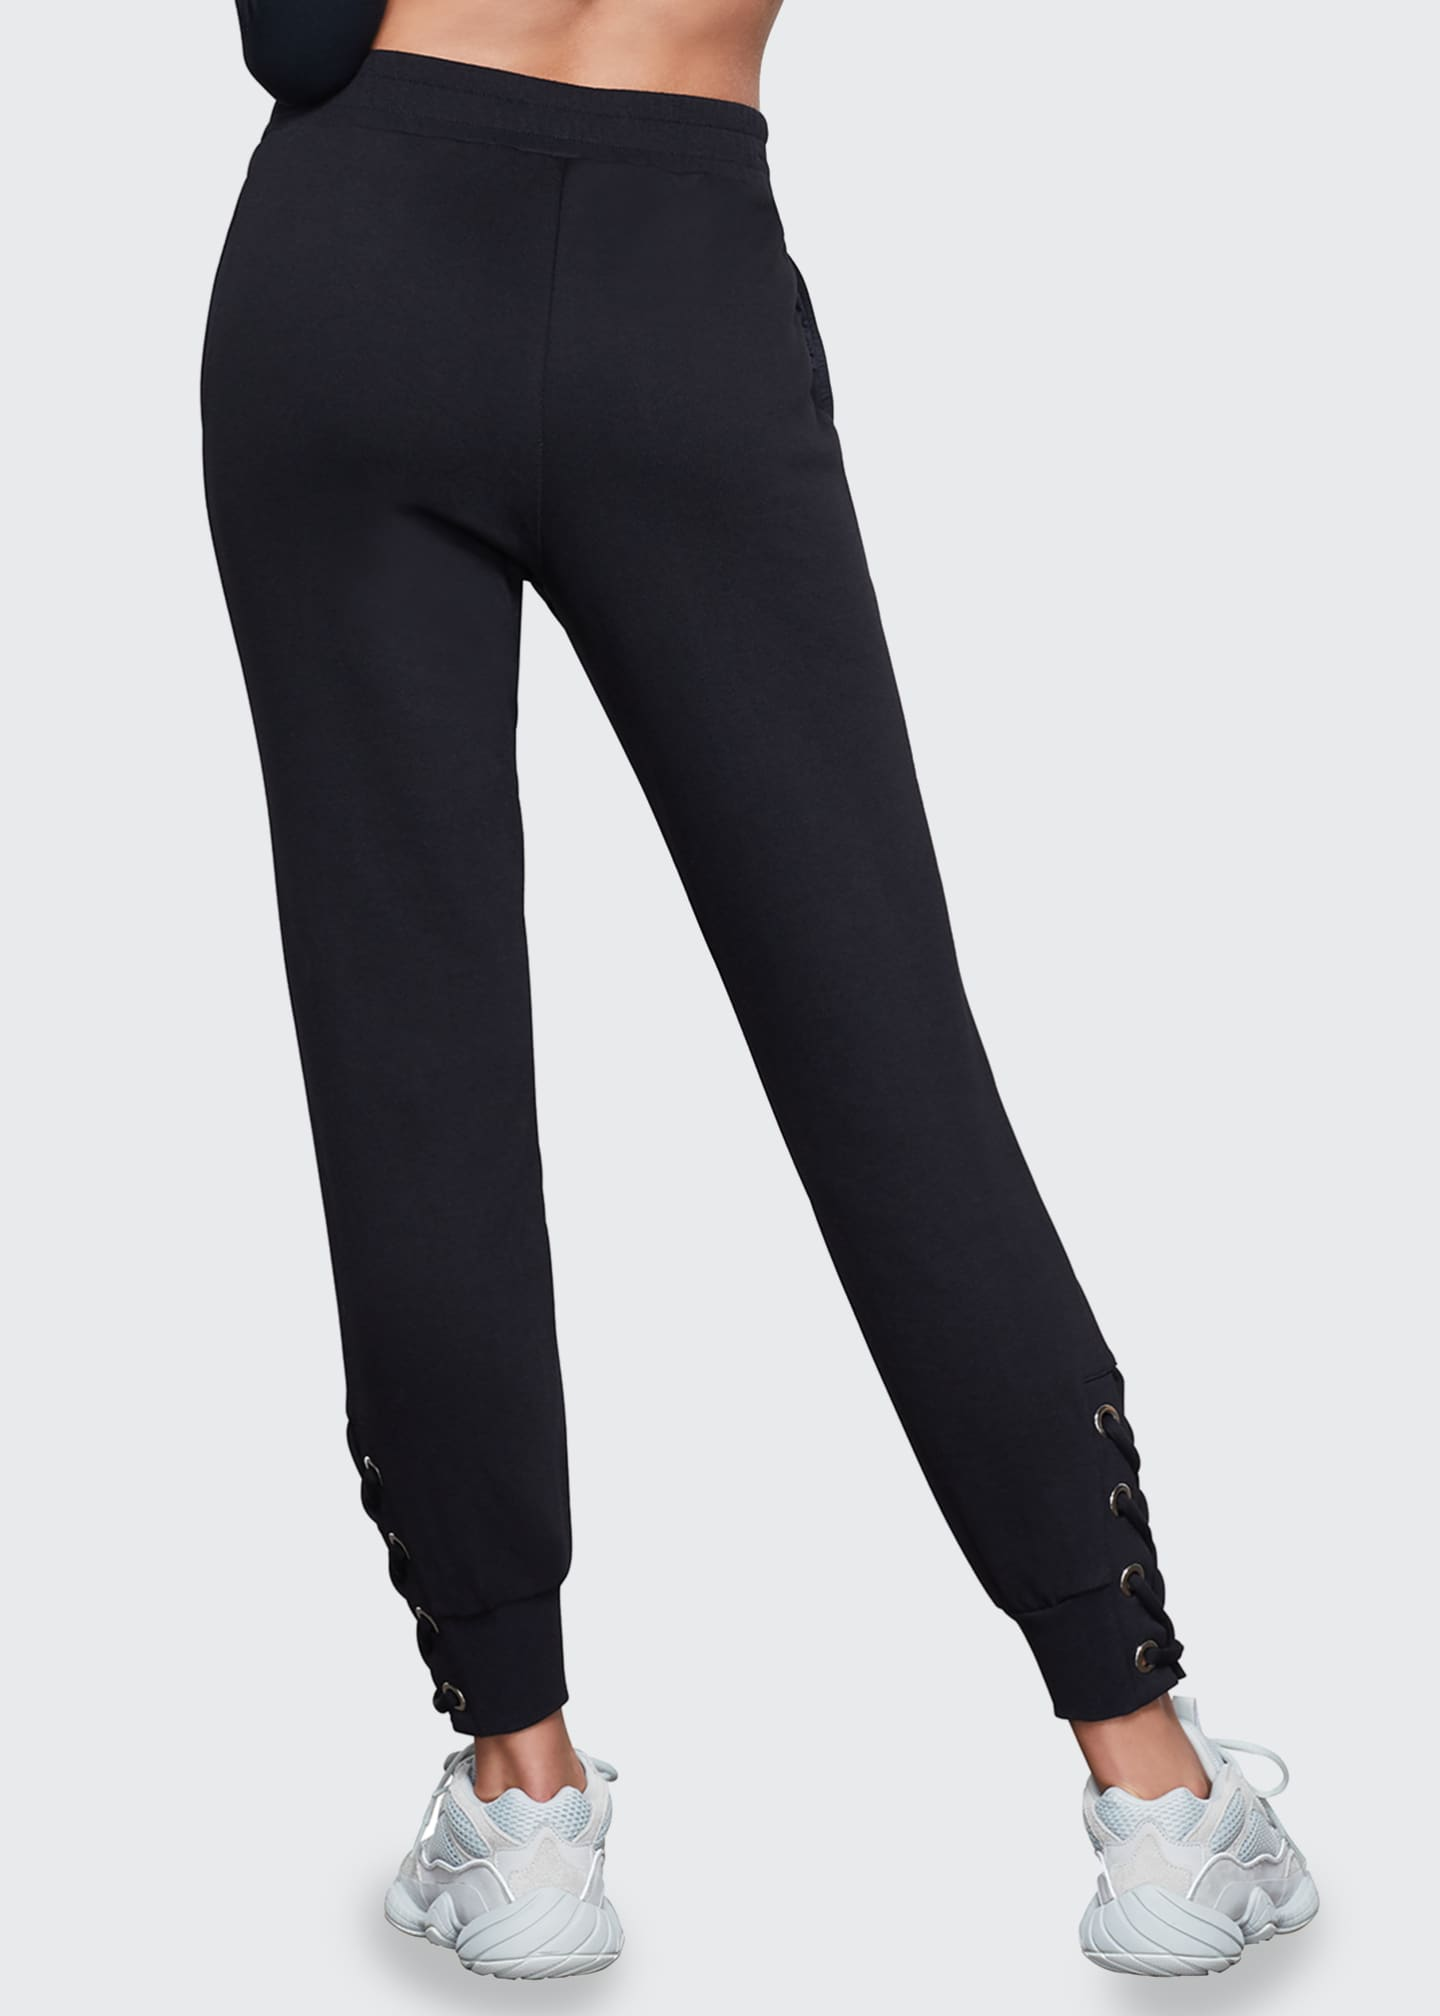 Image 3 of 3: Lace-Up Jogger Pants - Inclusive Sizing